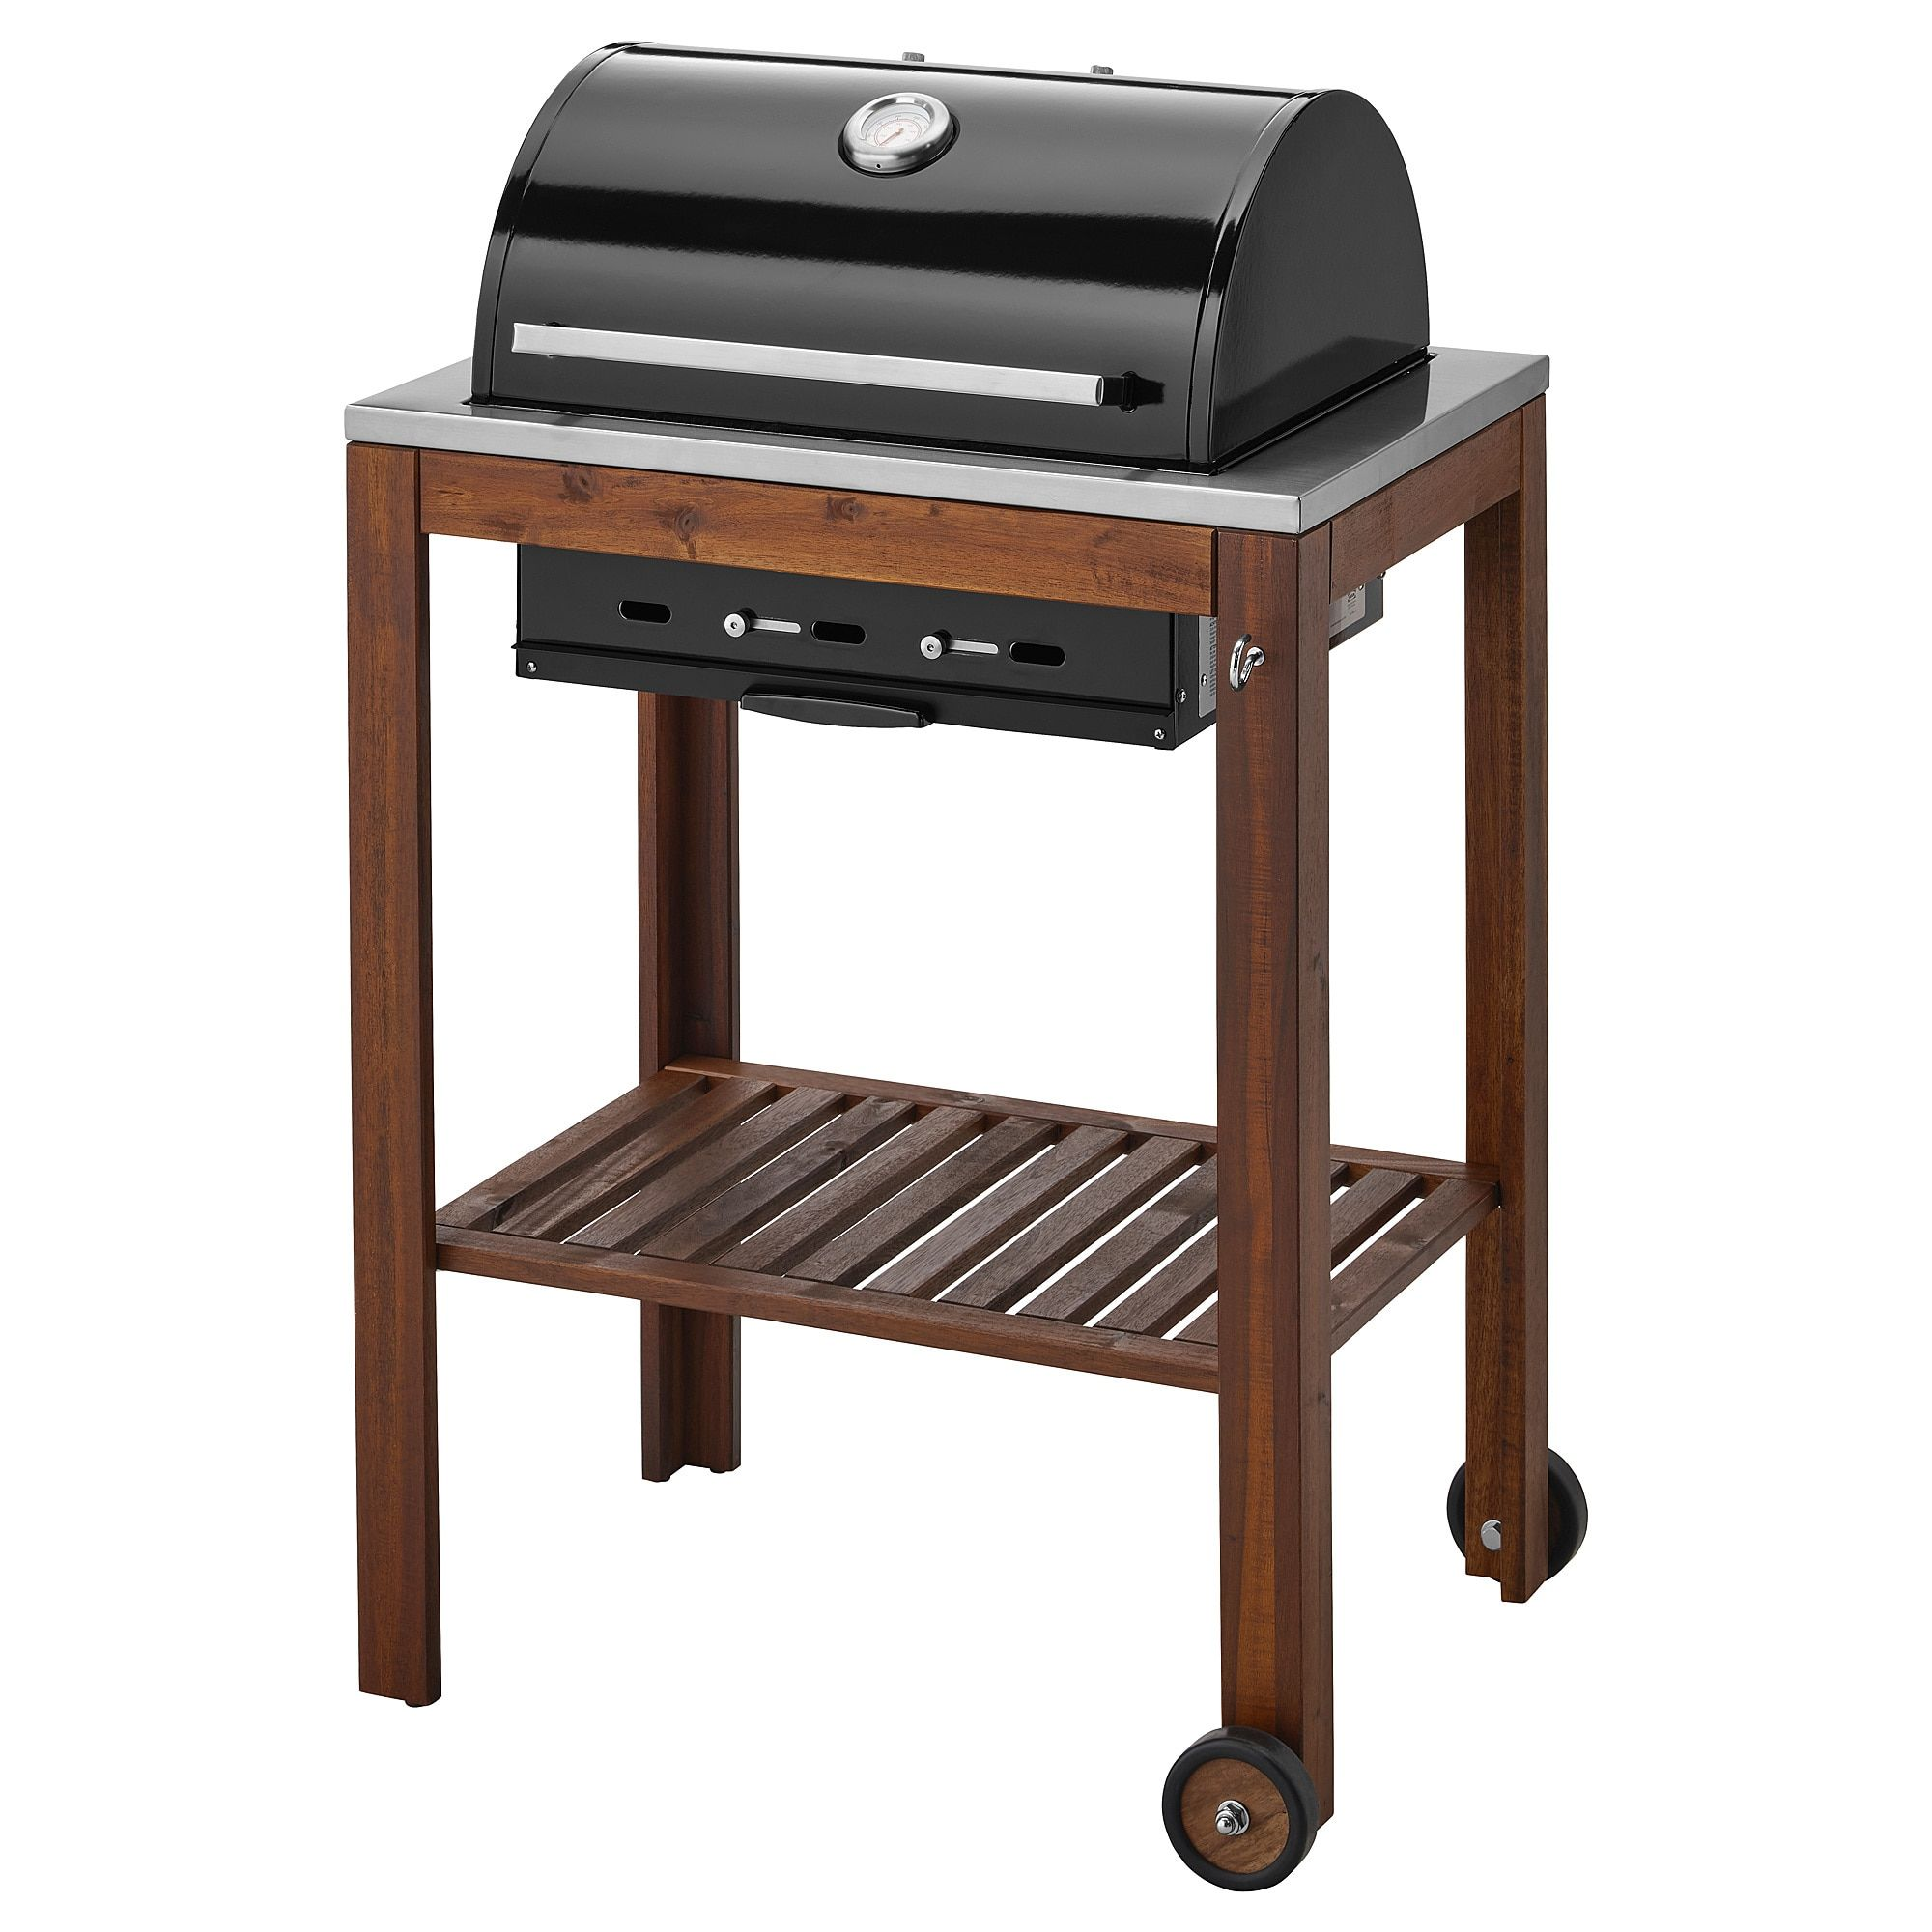 Ikea Barbecue Charbon De Bois ikea applaro / klasen brown stained charcoal grill | ikea